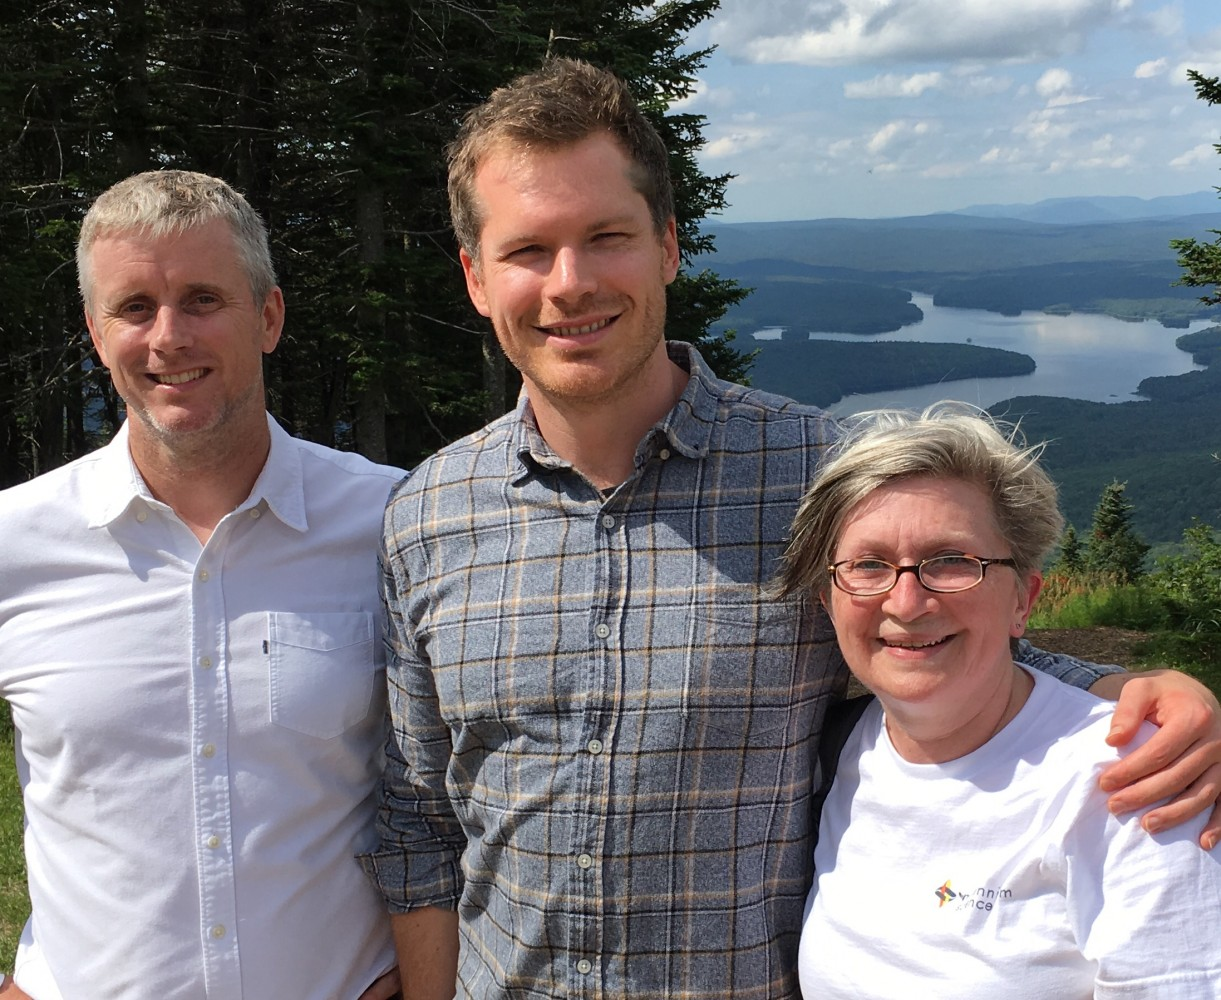 Professor Nick Barker (Singapore) and Dr Dusty Flanagan (now at the Beatson, Glasgow, UK) at the summit of Mount Snow, Vermont, USA.